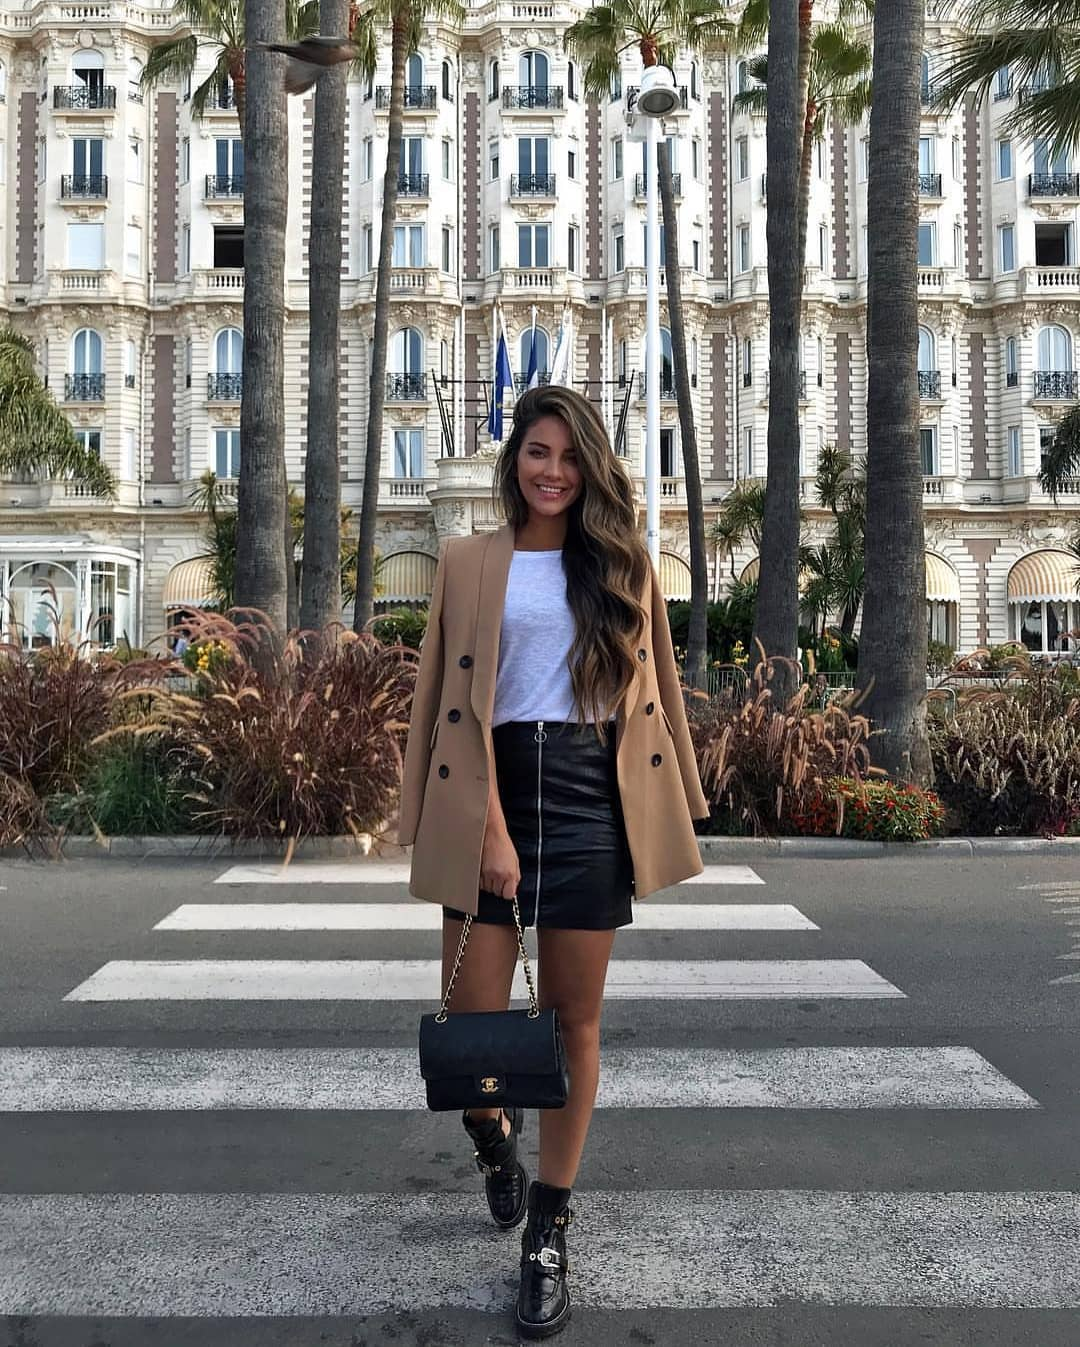 Camel Blazer With White Tee And Black Leather Mini Skirt For Spring 2019